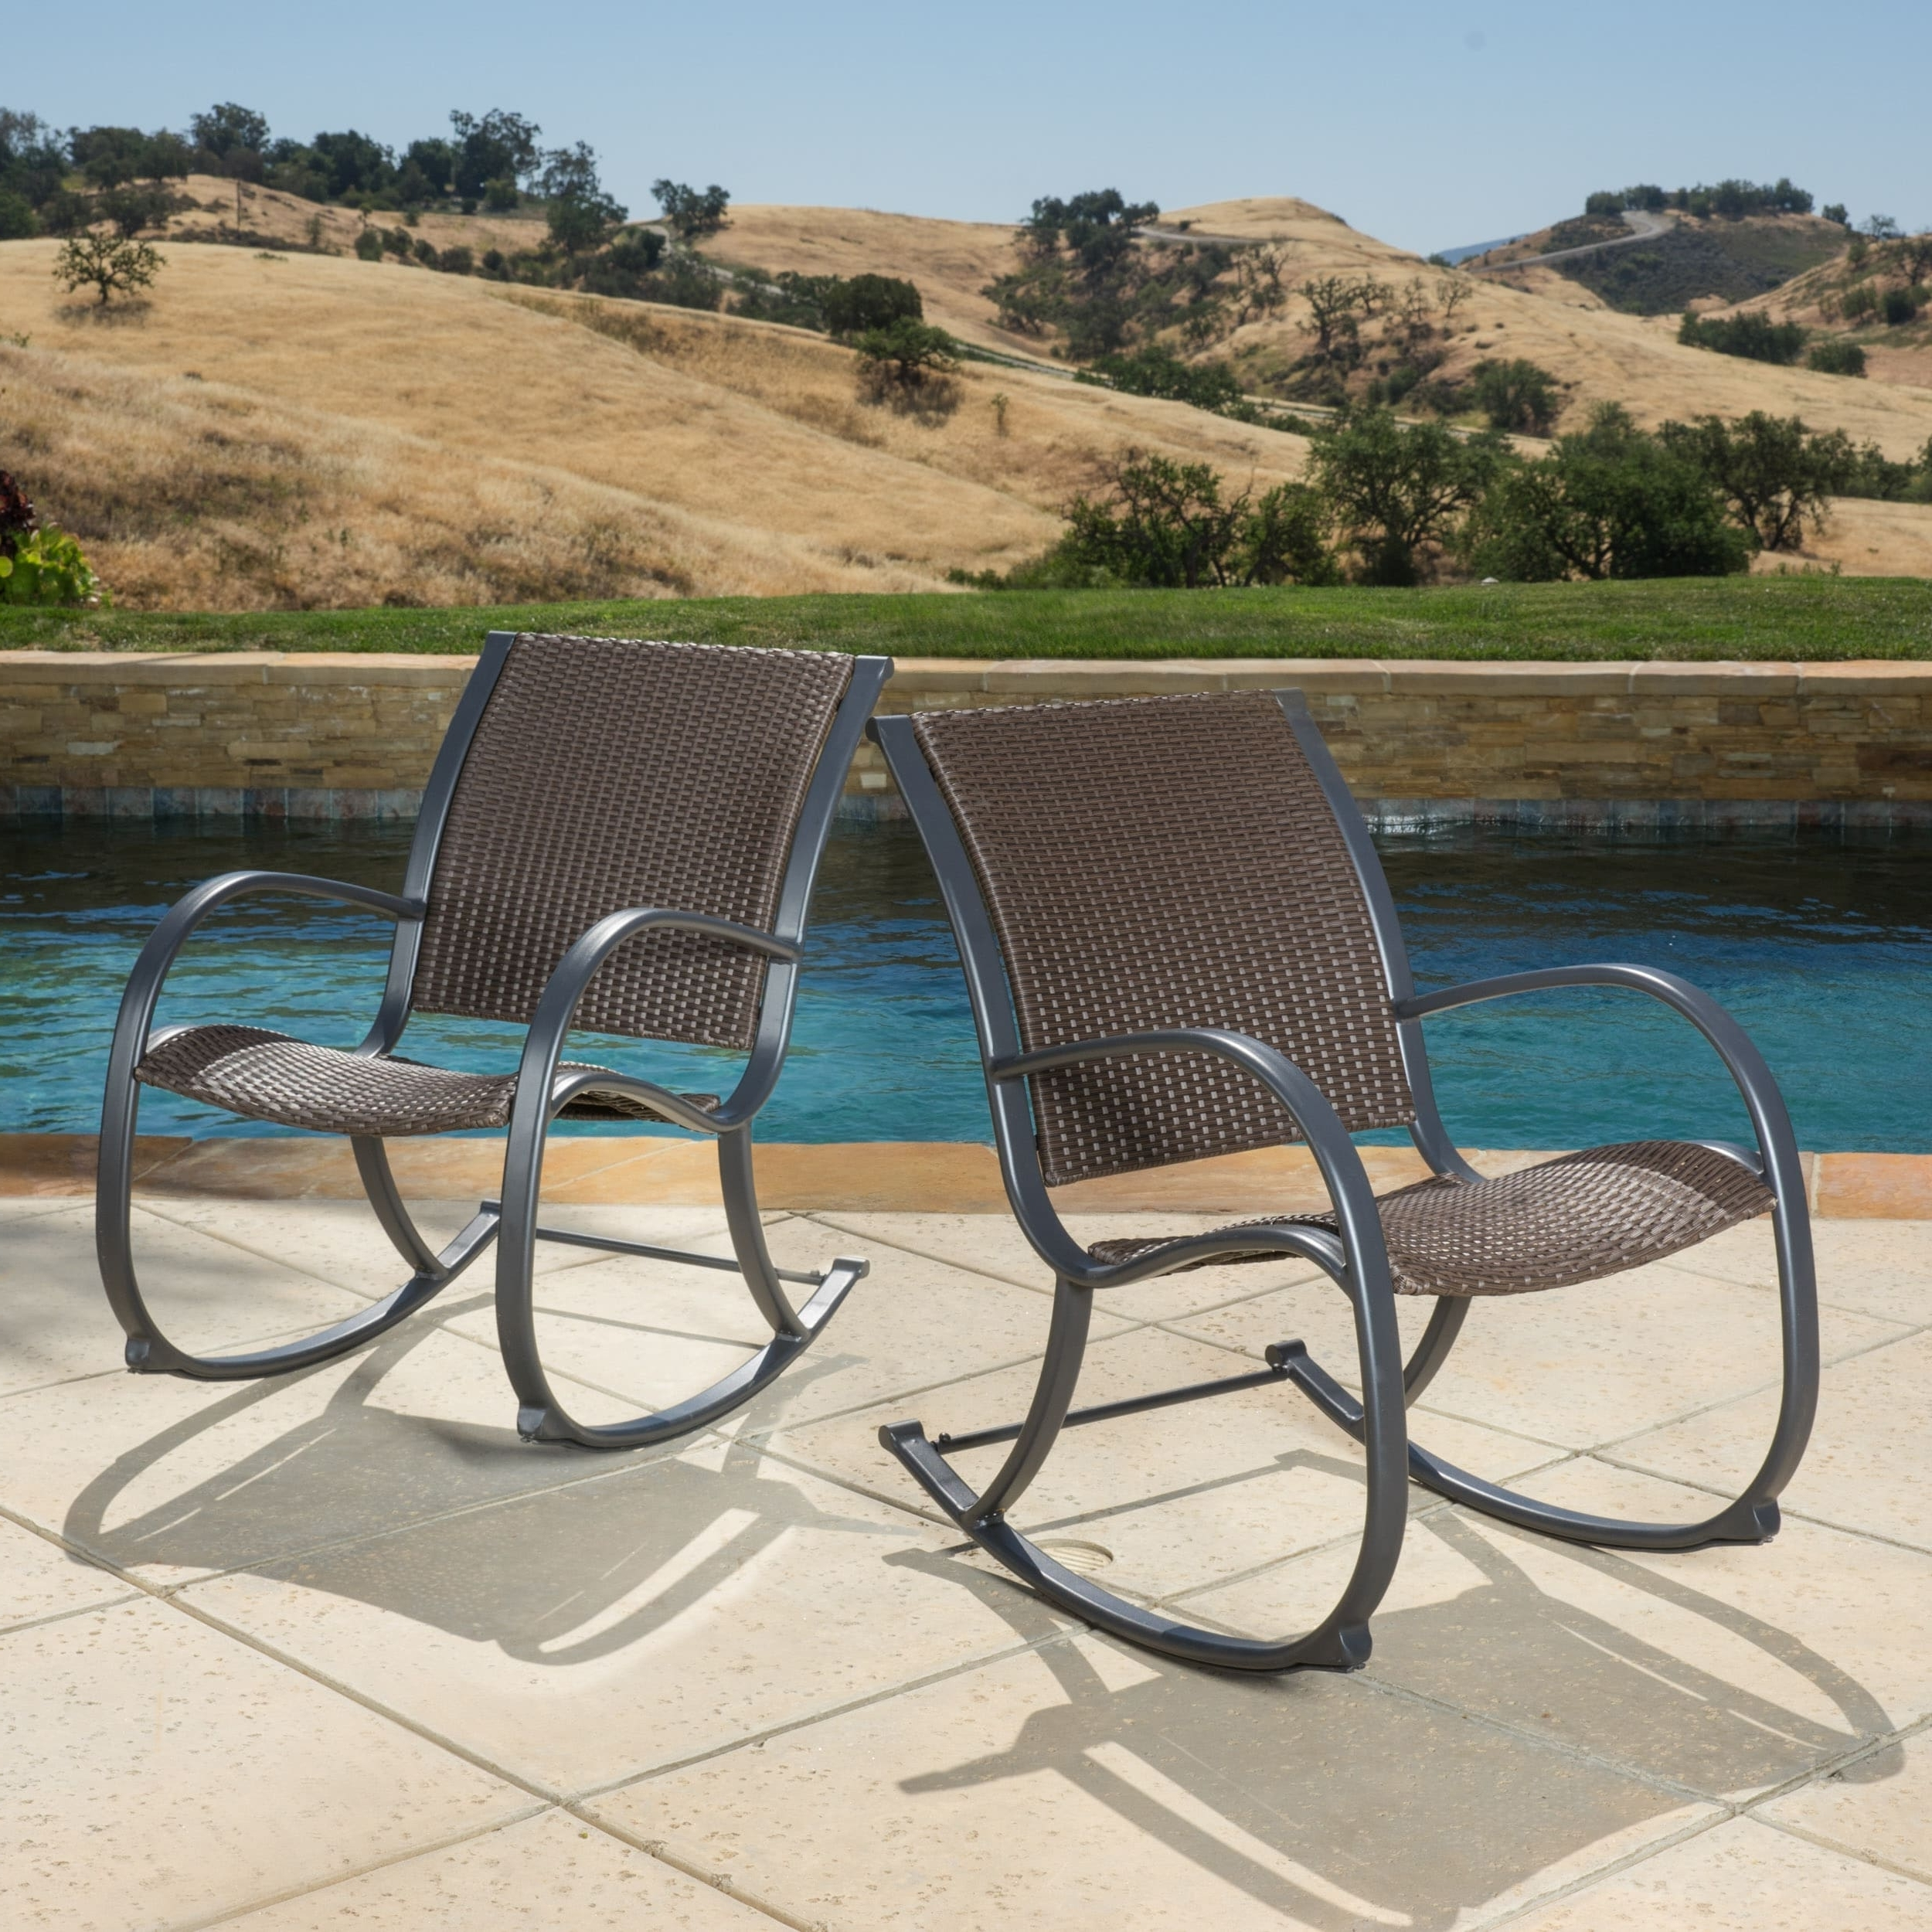 Best And Newest Shop Gracie's Outdoor Wicker Rocking Chair (Set Of 2)Christopher Intended For Wicker Rocking Chairs Sets (View 2 of 15)